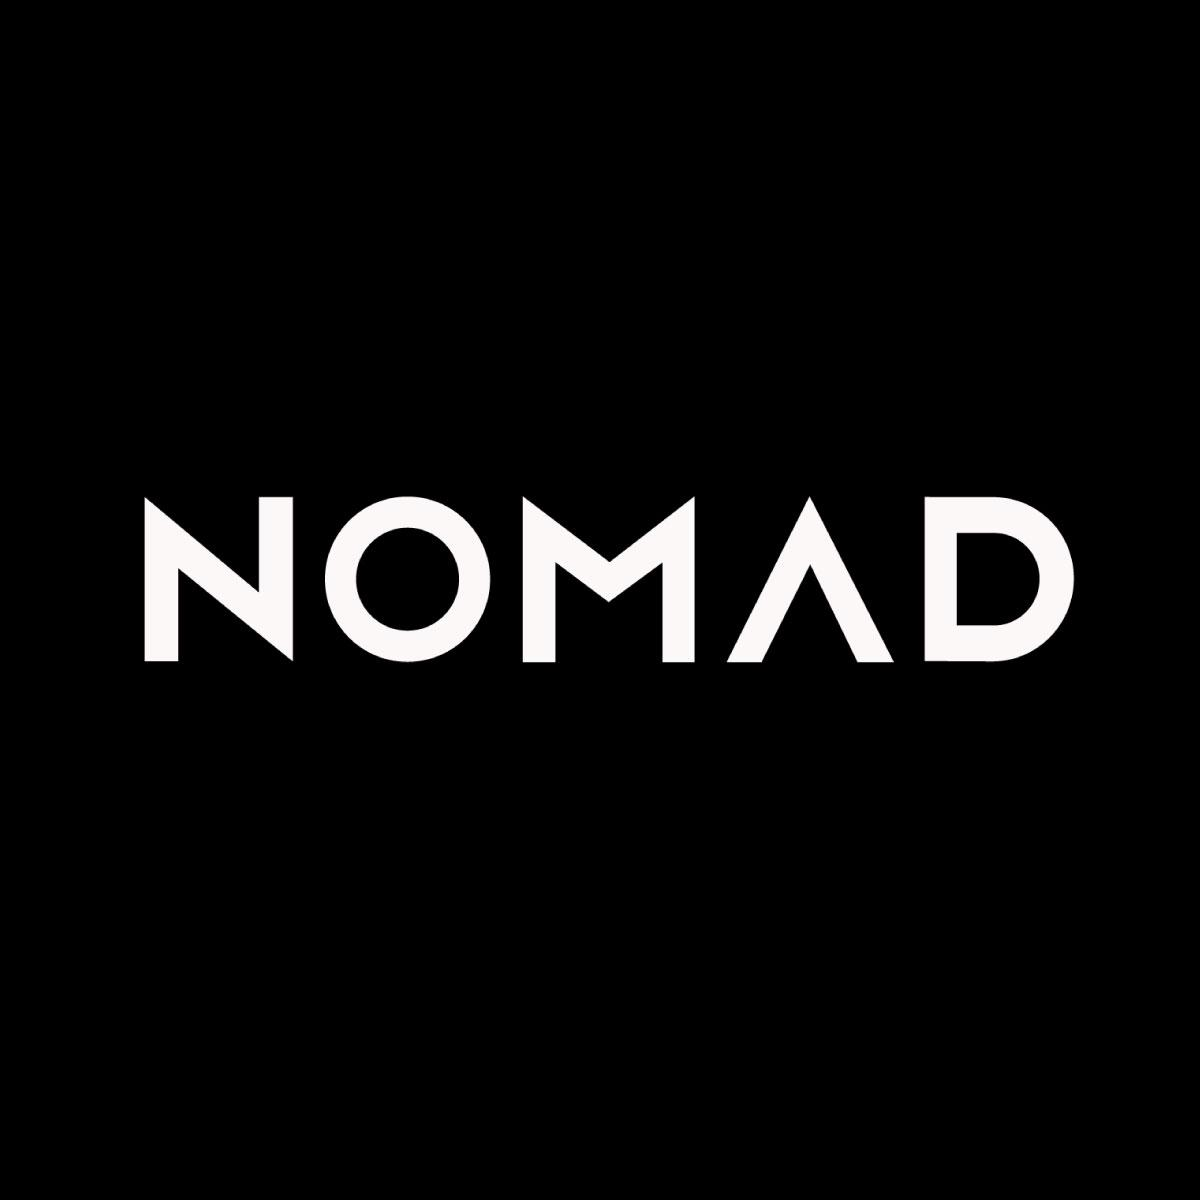 How long does international shipping take? - Nomad Support